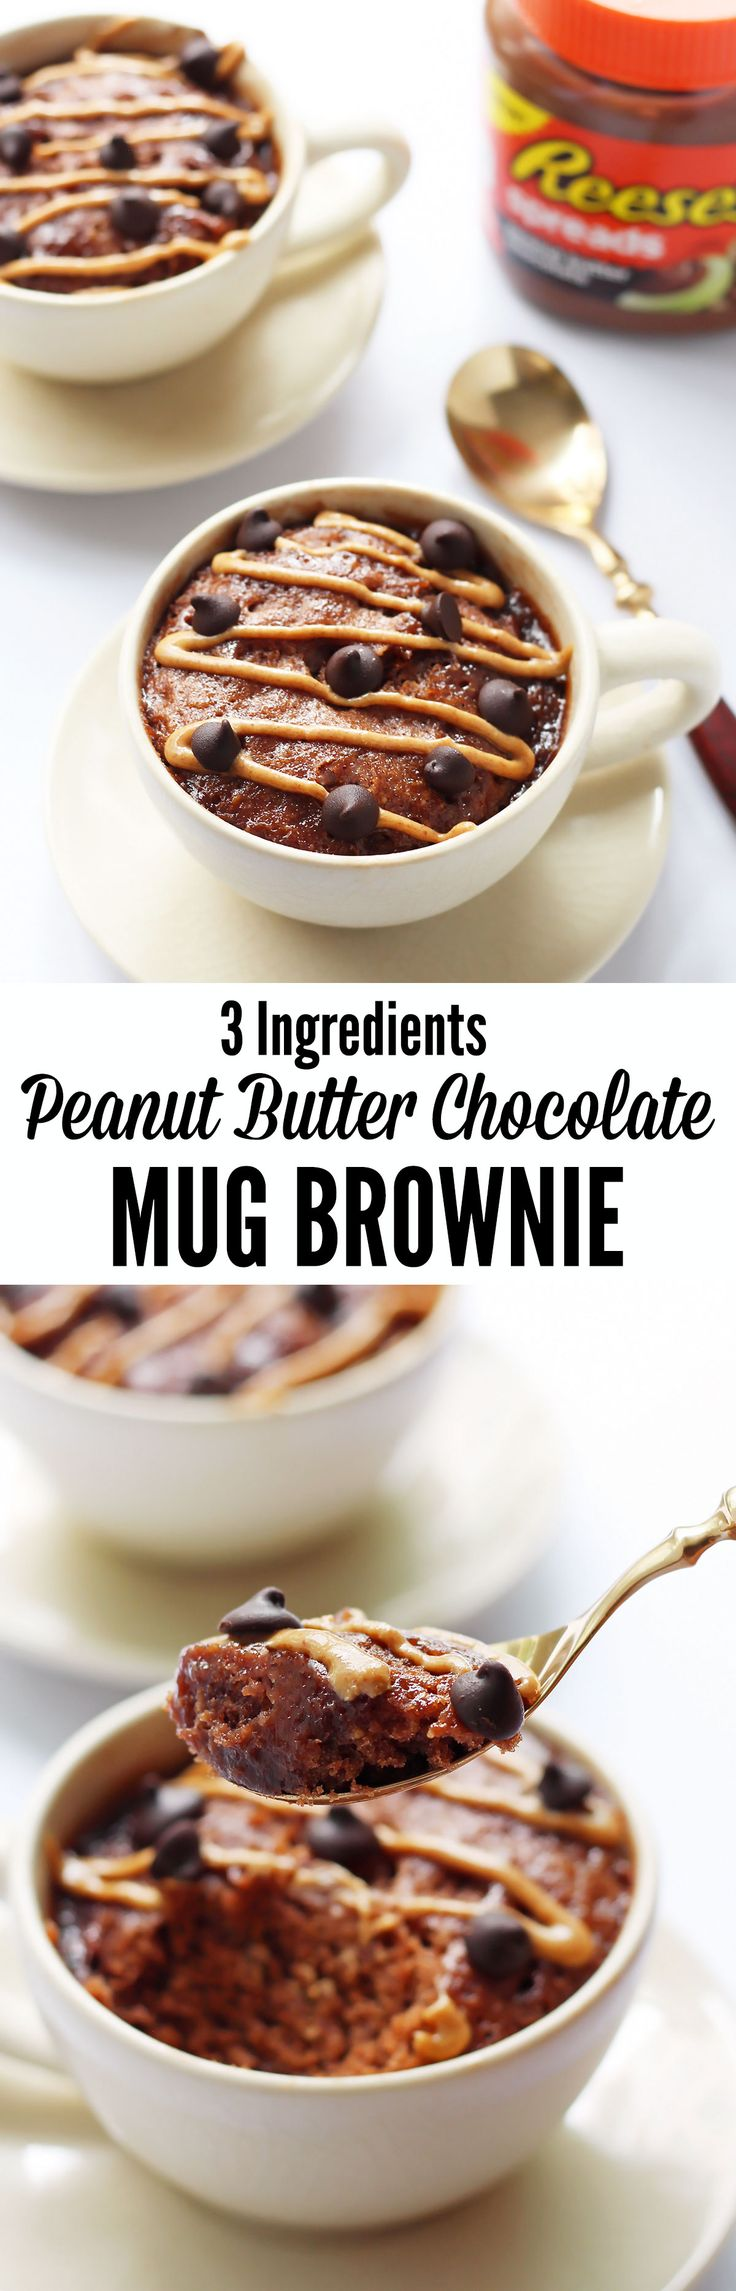 This 3 Ingredients Peanut Butter Chocolate Mug Brownie is incredible! A quick + easy recipe to satisfy dessert cravings in a flash (1 minute cook time).